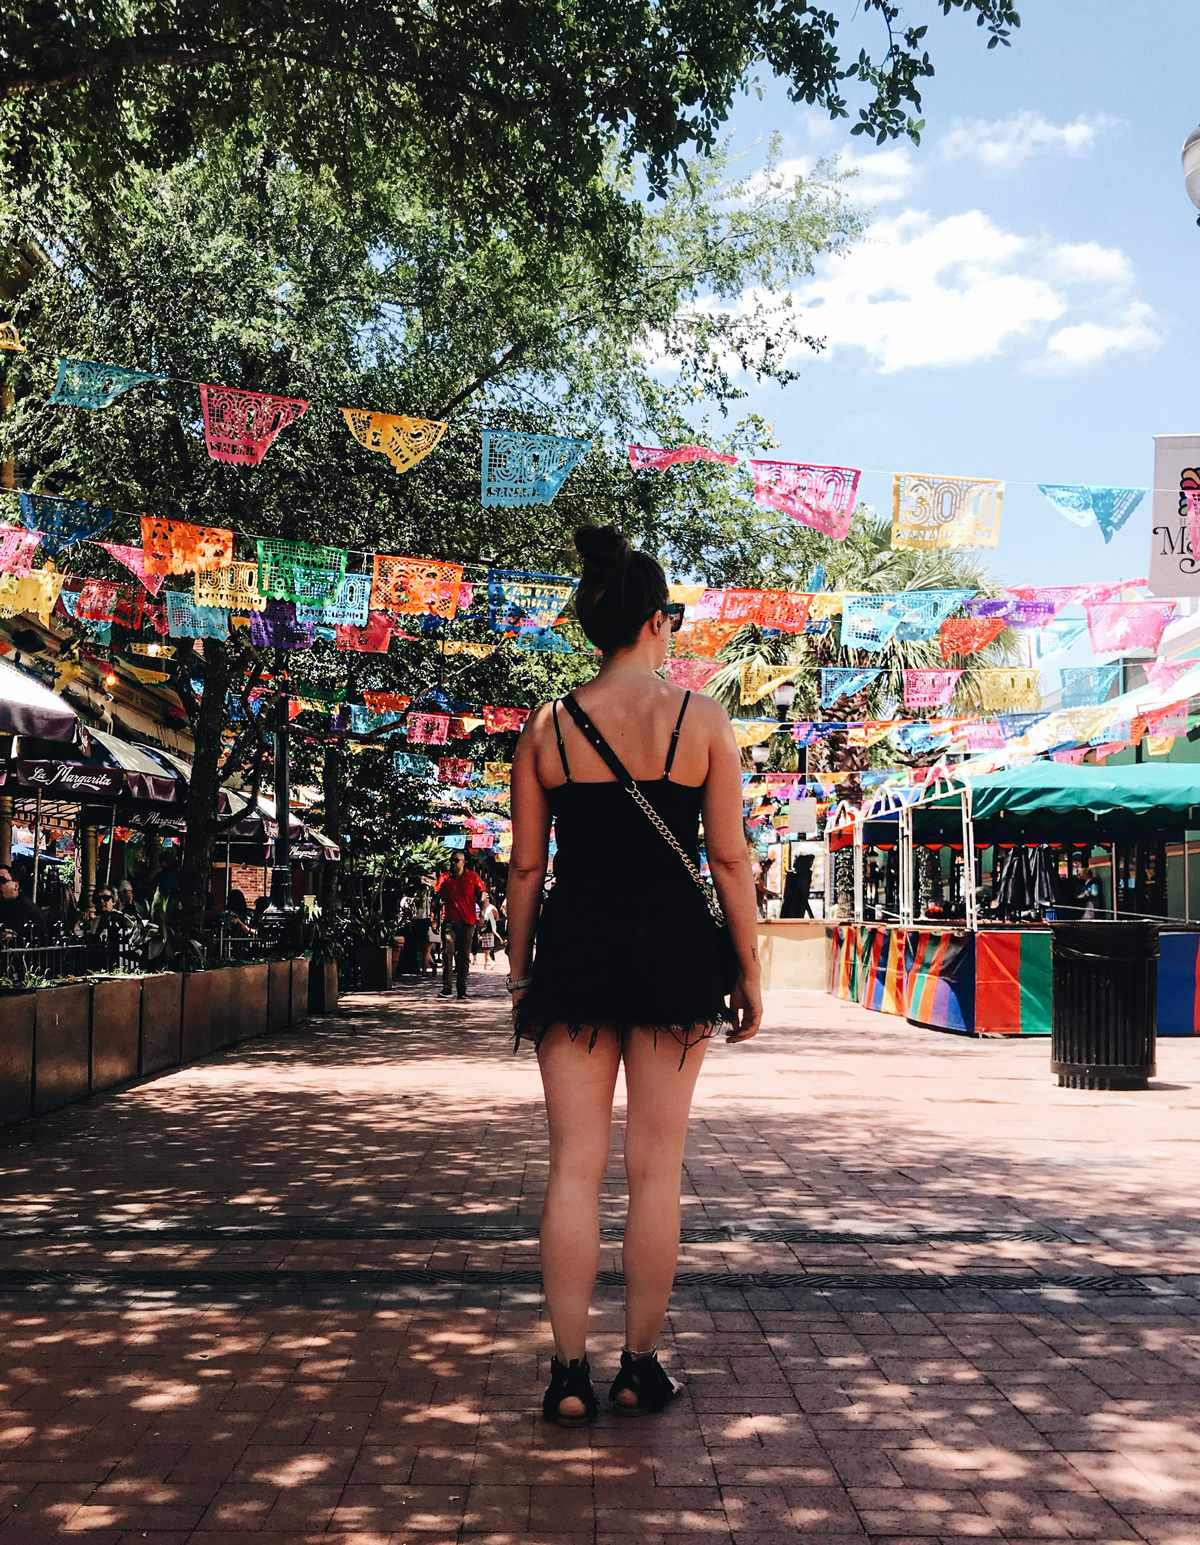 Fashion and Travelblogger Andrea Steiner write on her blog about the best places in Texas and Louisiana.